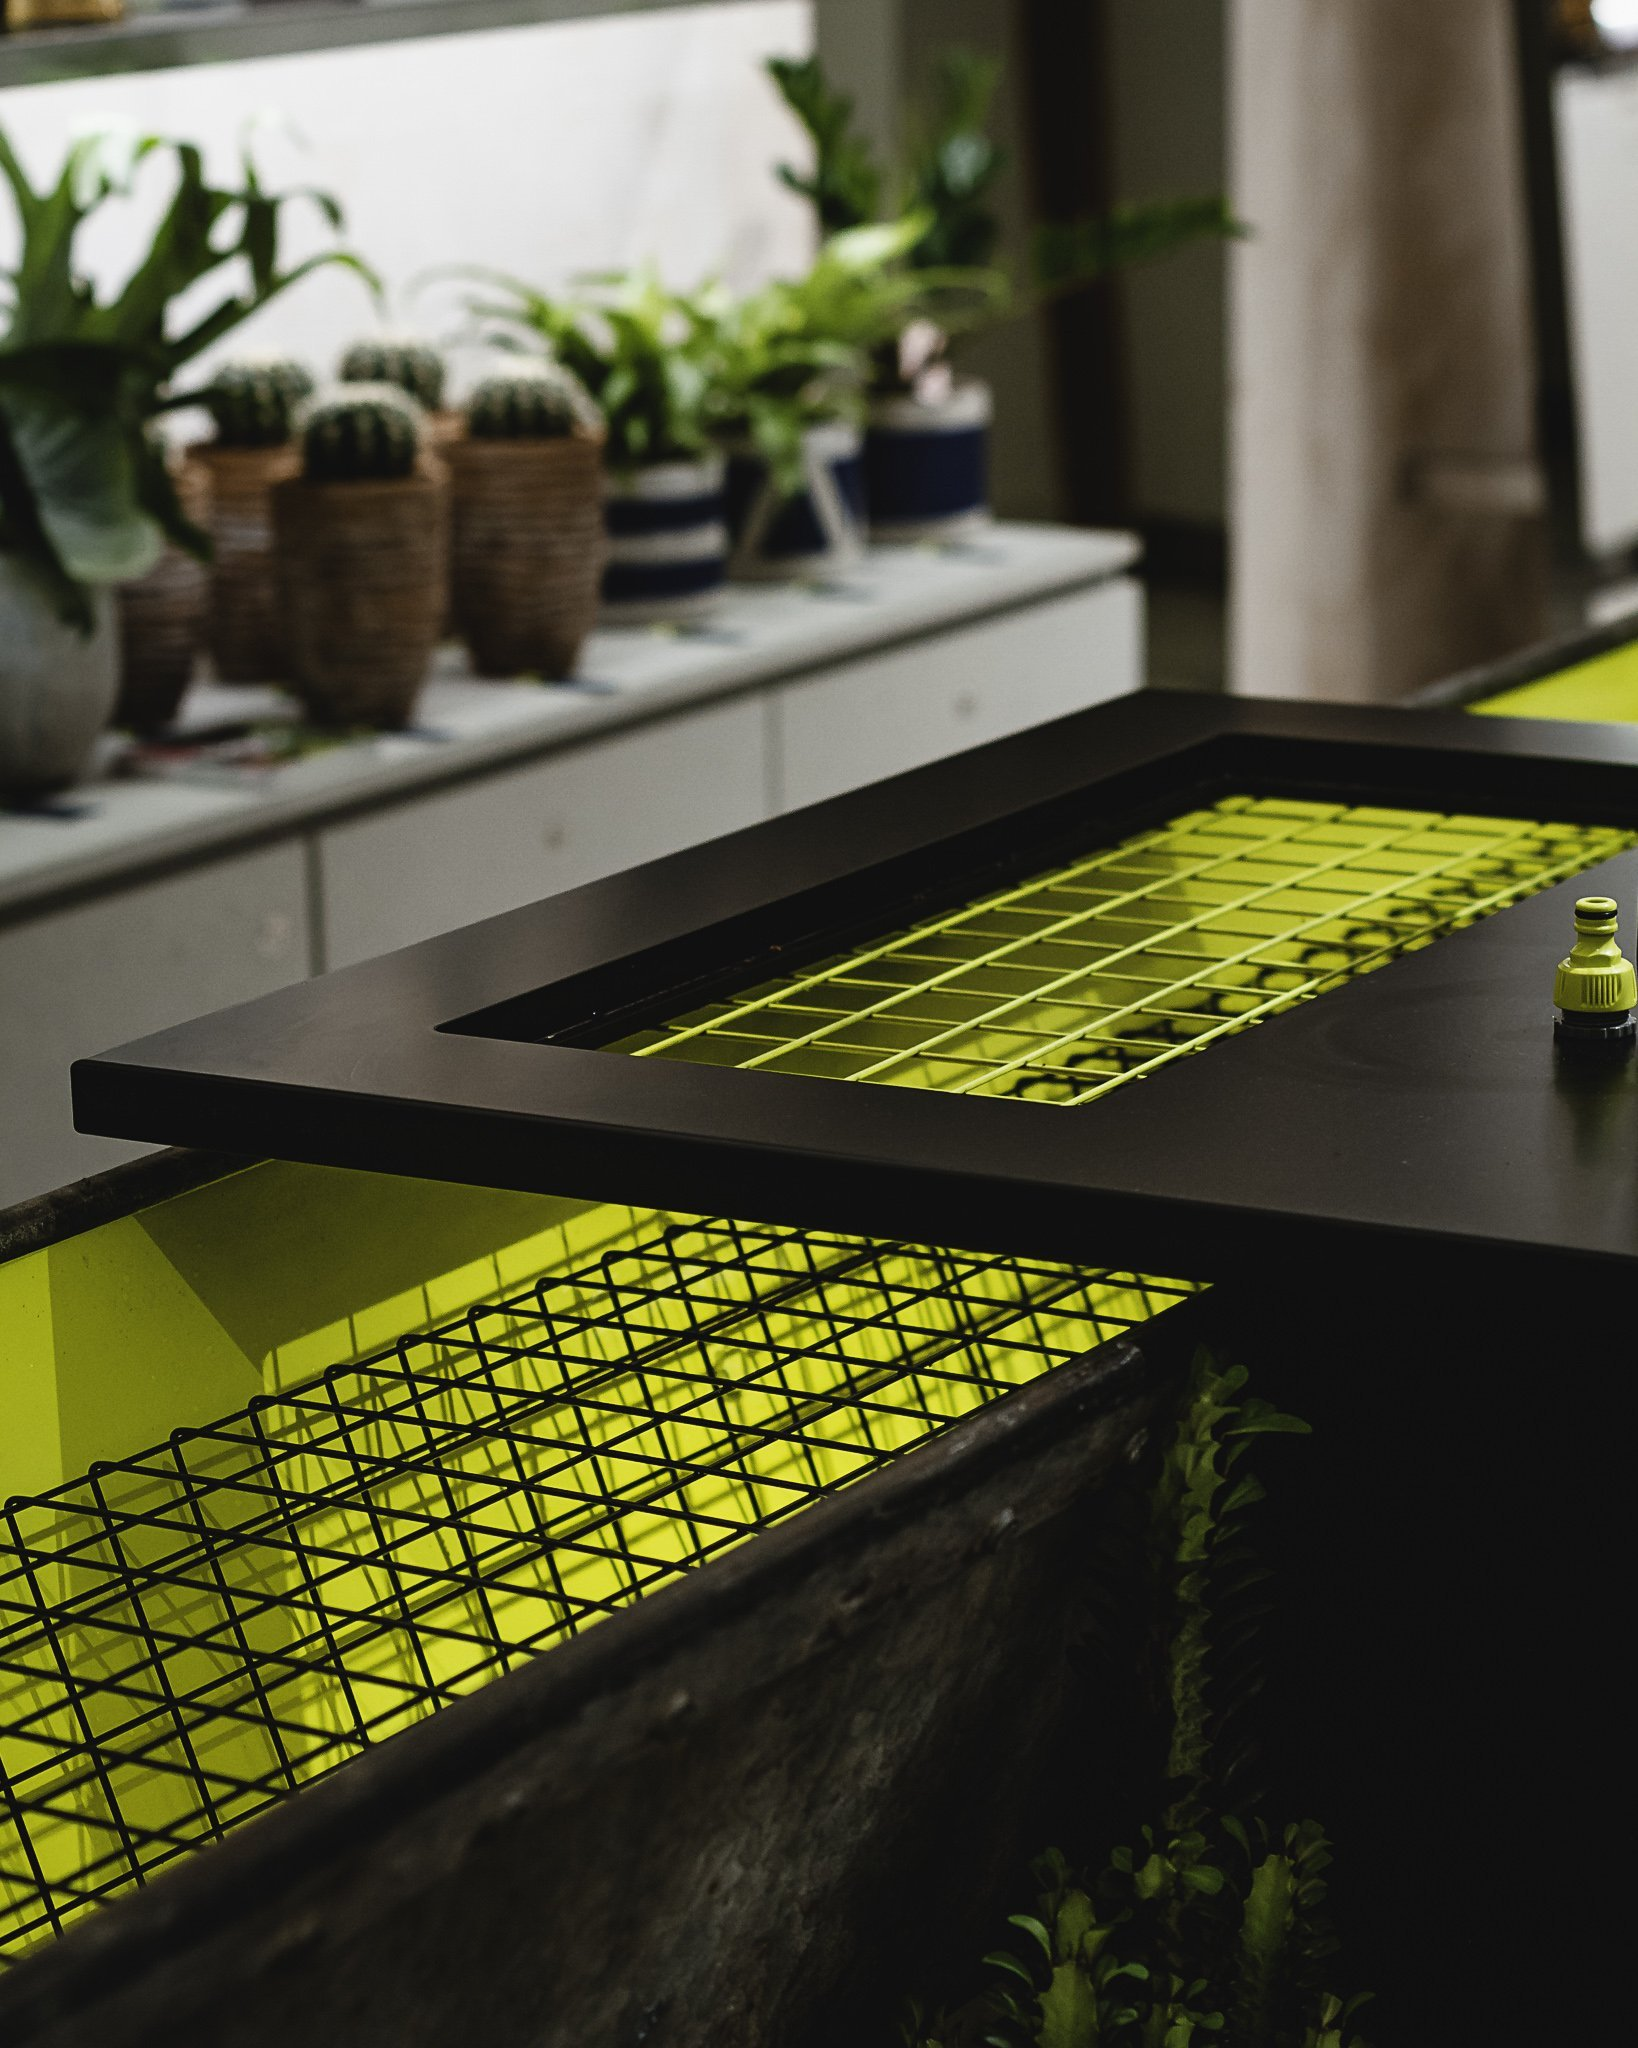 Flourescent yellow inner with a black cage and cover on this sink for a shop interior fit out upcycled from a vintage horse trough